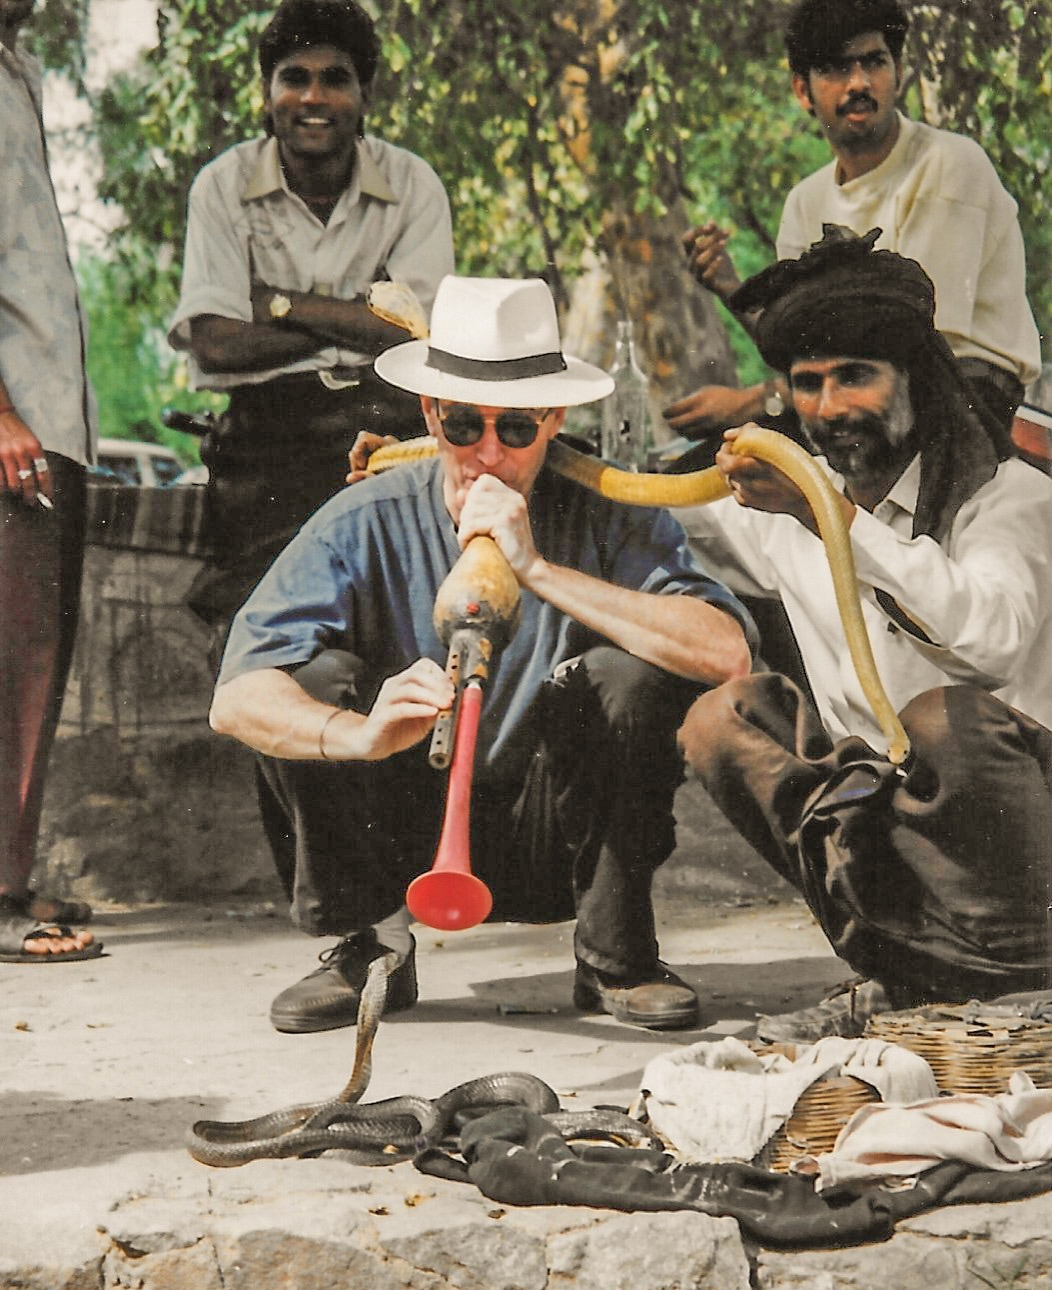 Rich copes with cobras in India / Expats Returning to a Changed America / Karen McCann / EnjoyLivingAbroad.com